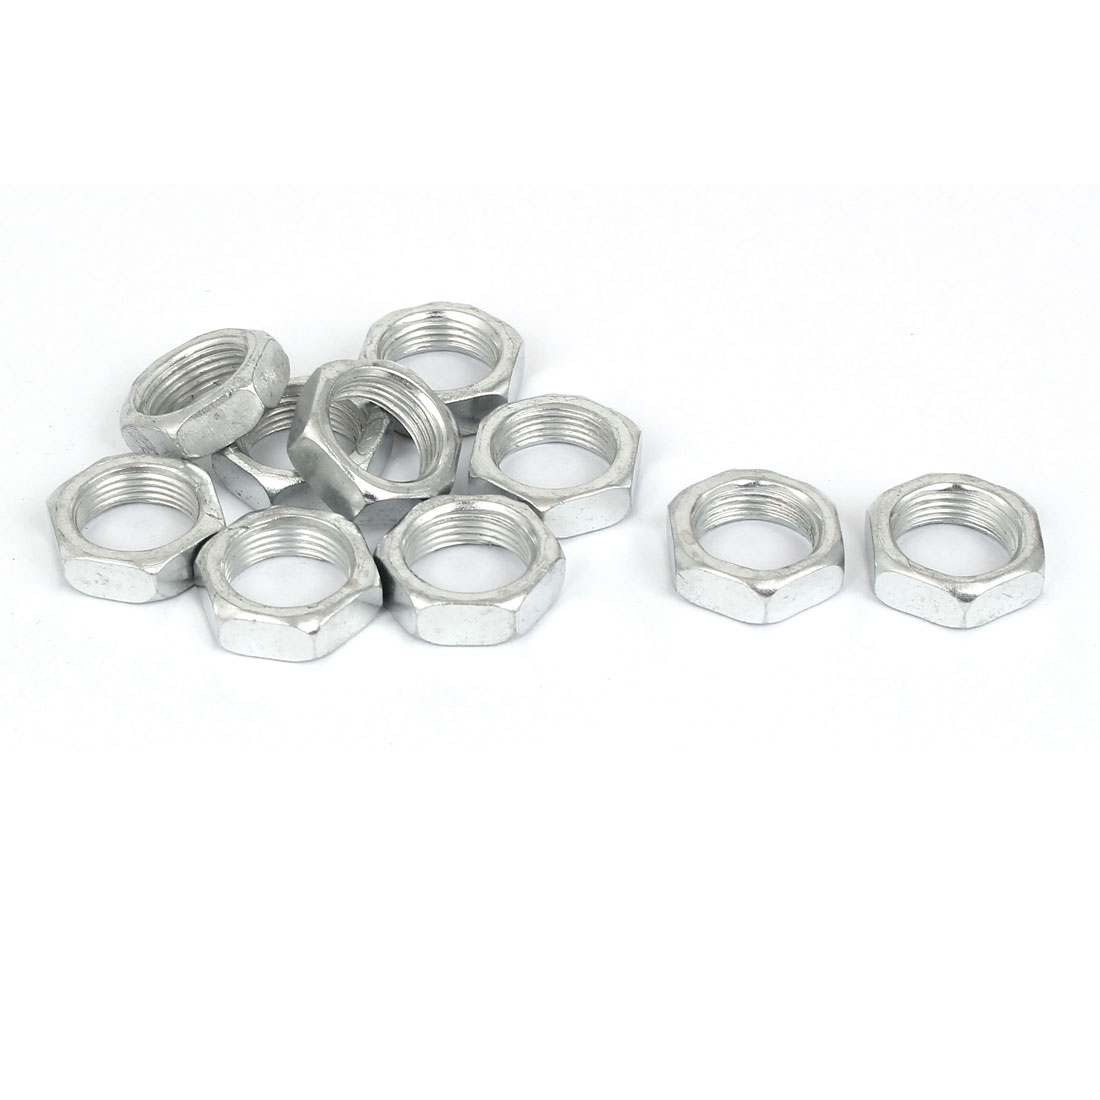 M14x7mm 1mm Pitch Zinc Plated Hex Nuts Fastener 10pcs